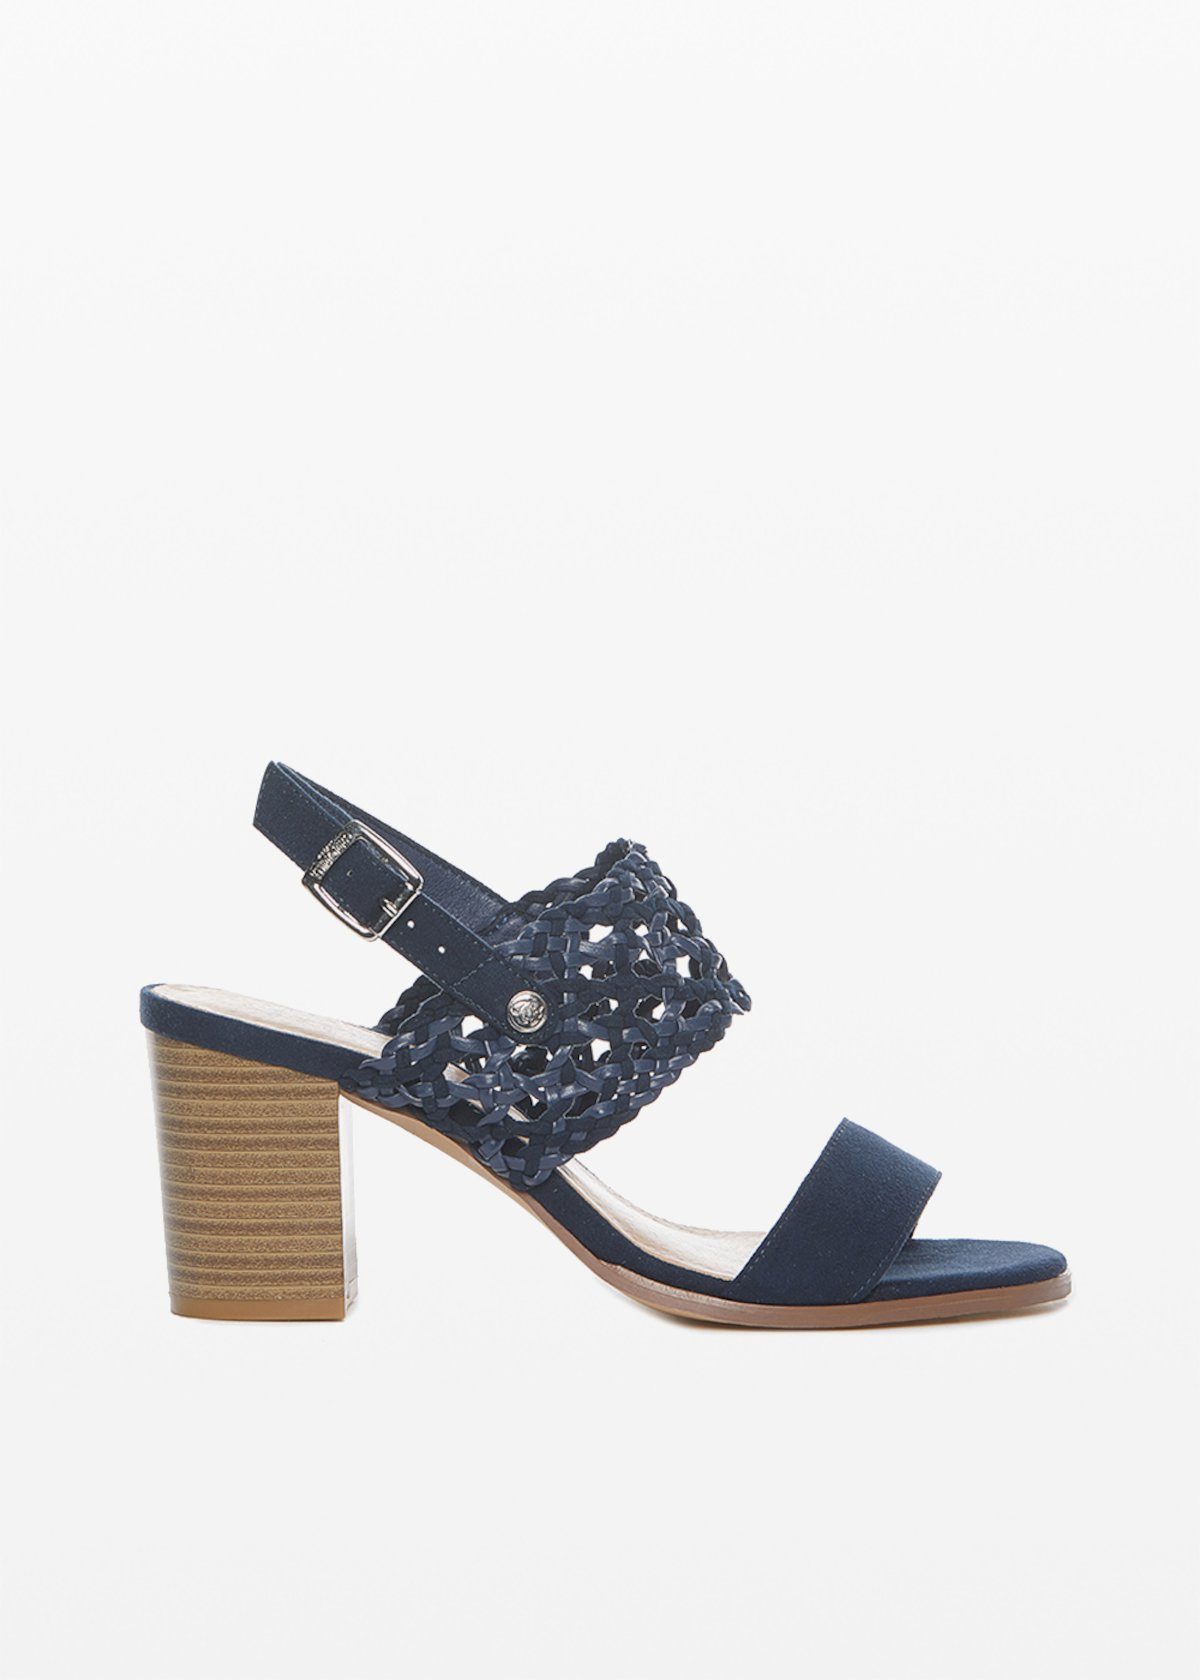 Saily faux suede sandals with braided strip